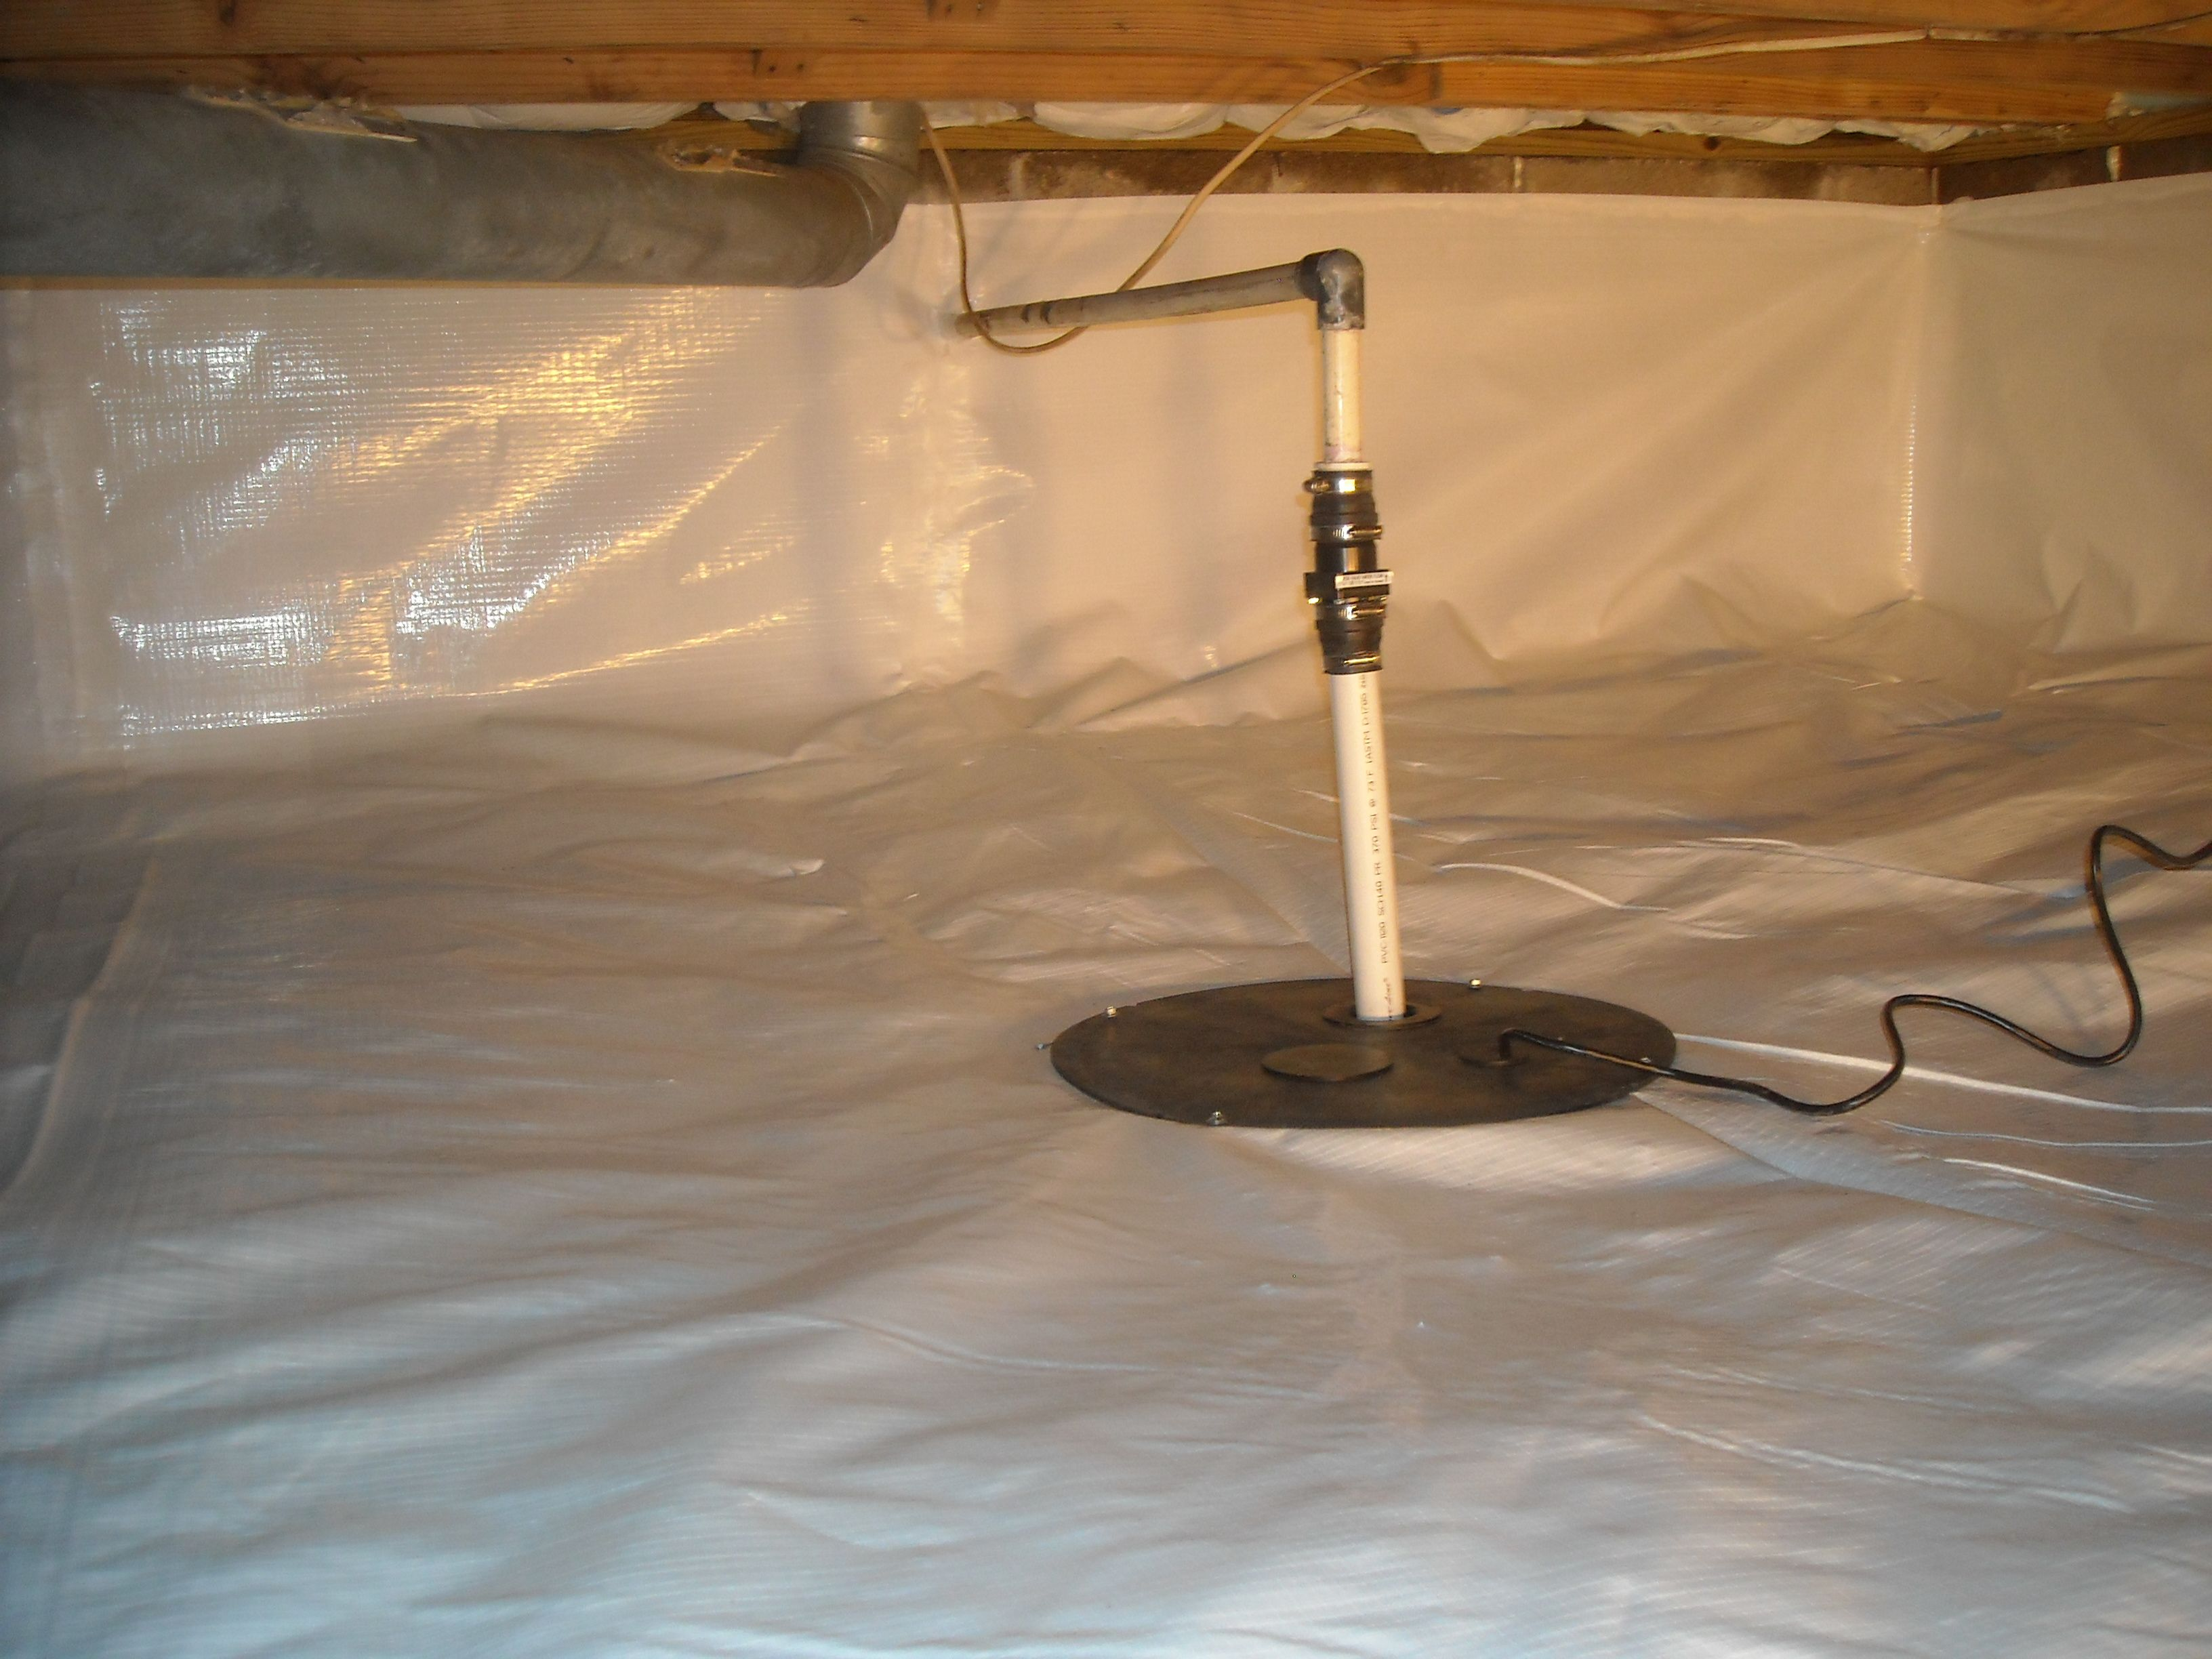 After Picture Of A Sump Pump In A Crawl Space Encapsulation System Http Www Indianacrawlspacerepair Com Vapo Crawl Space Encapsulation Crawlspace Sump Pump